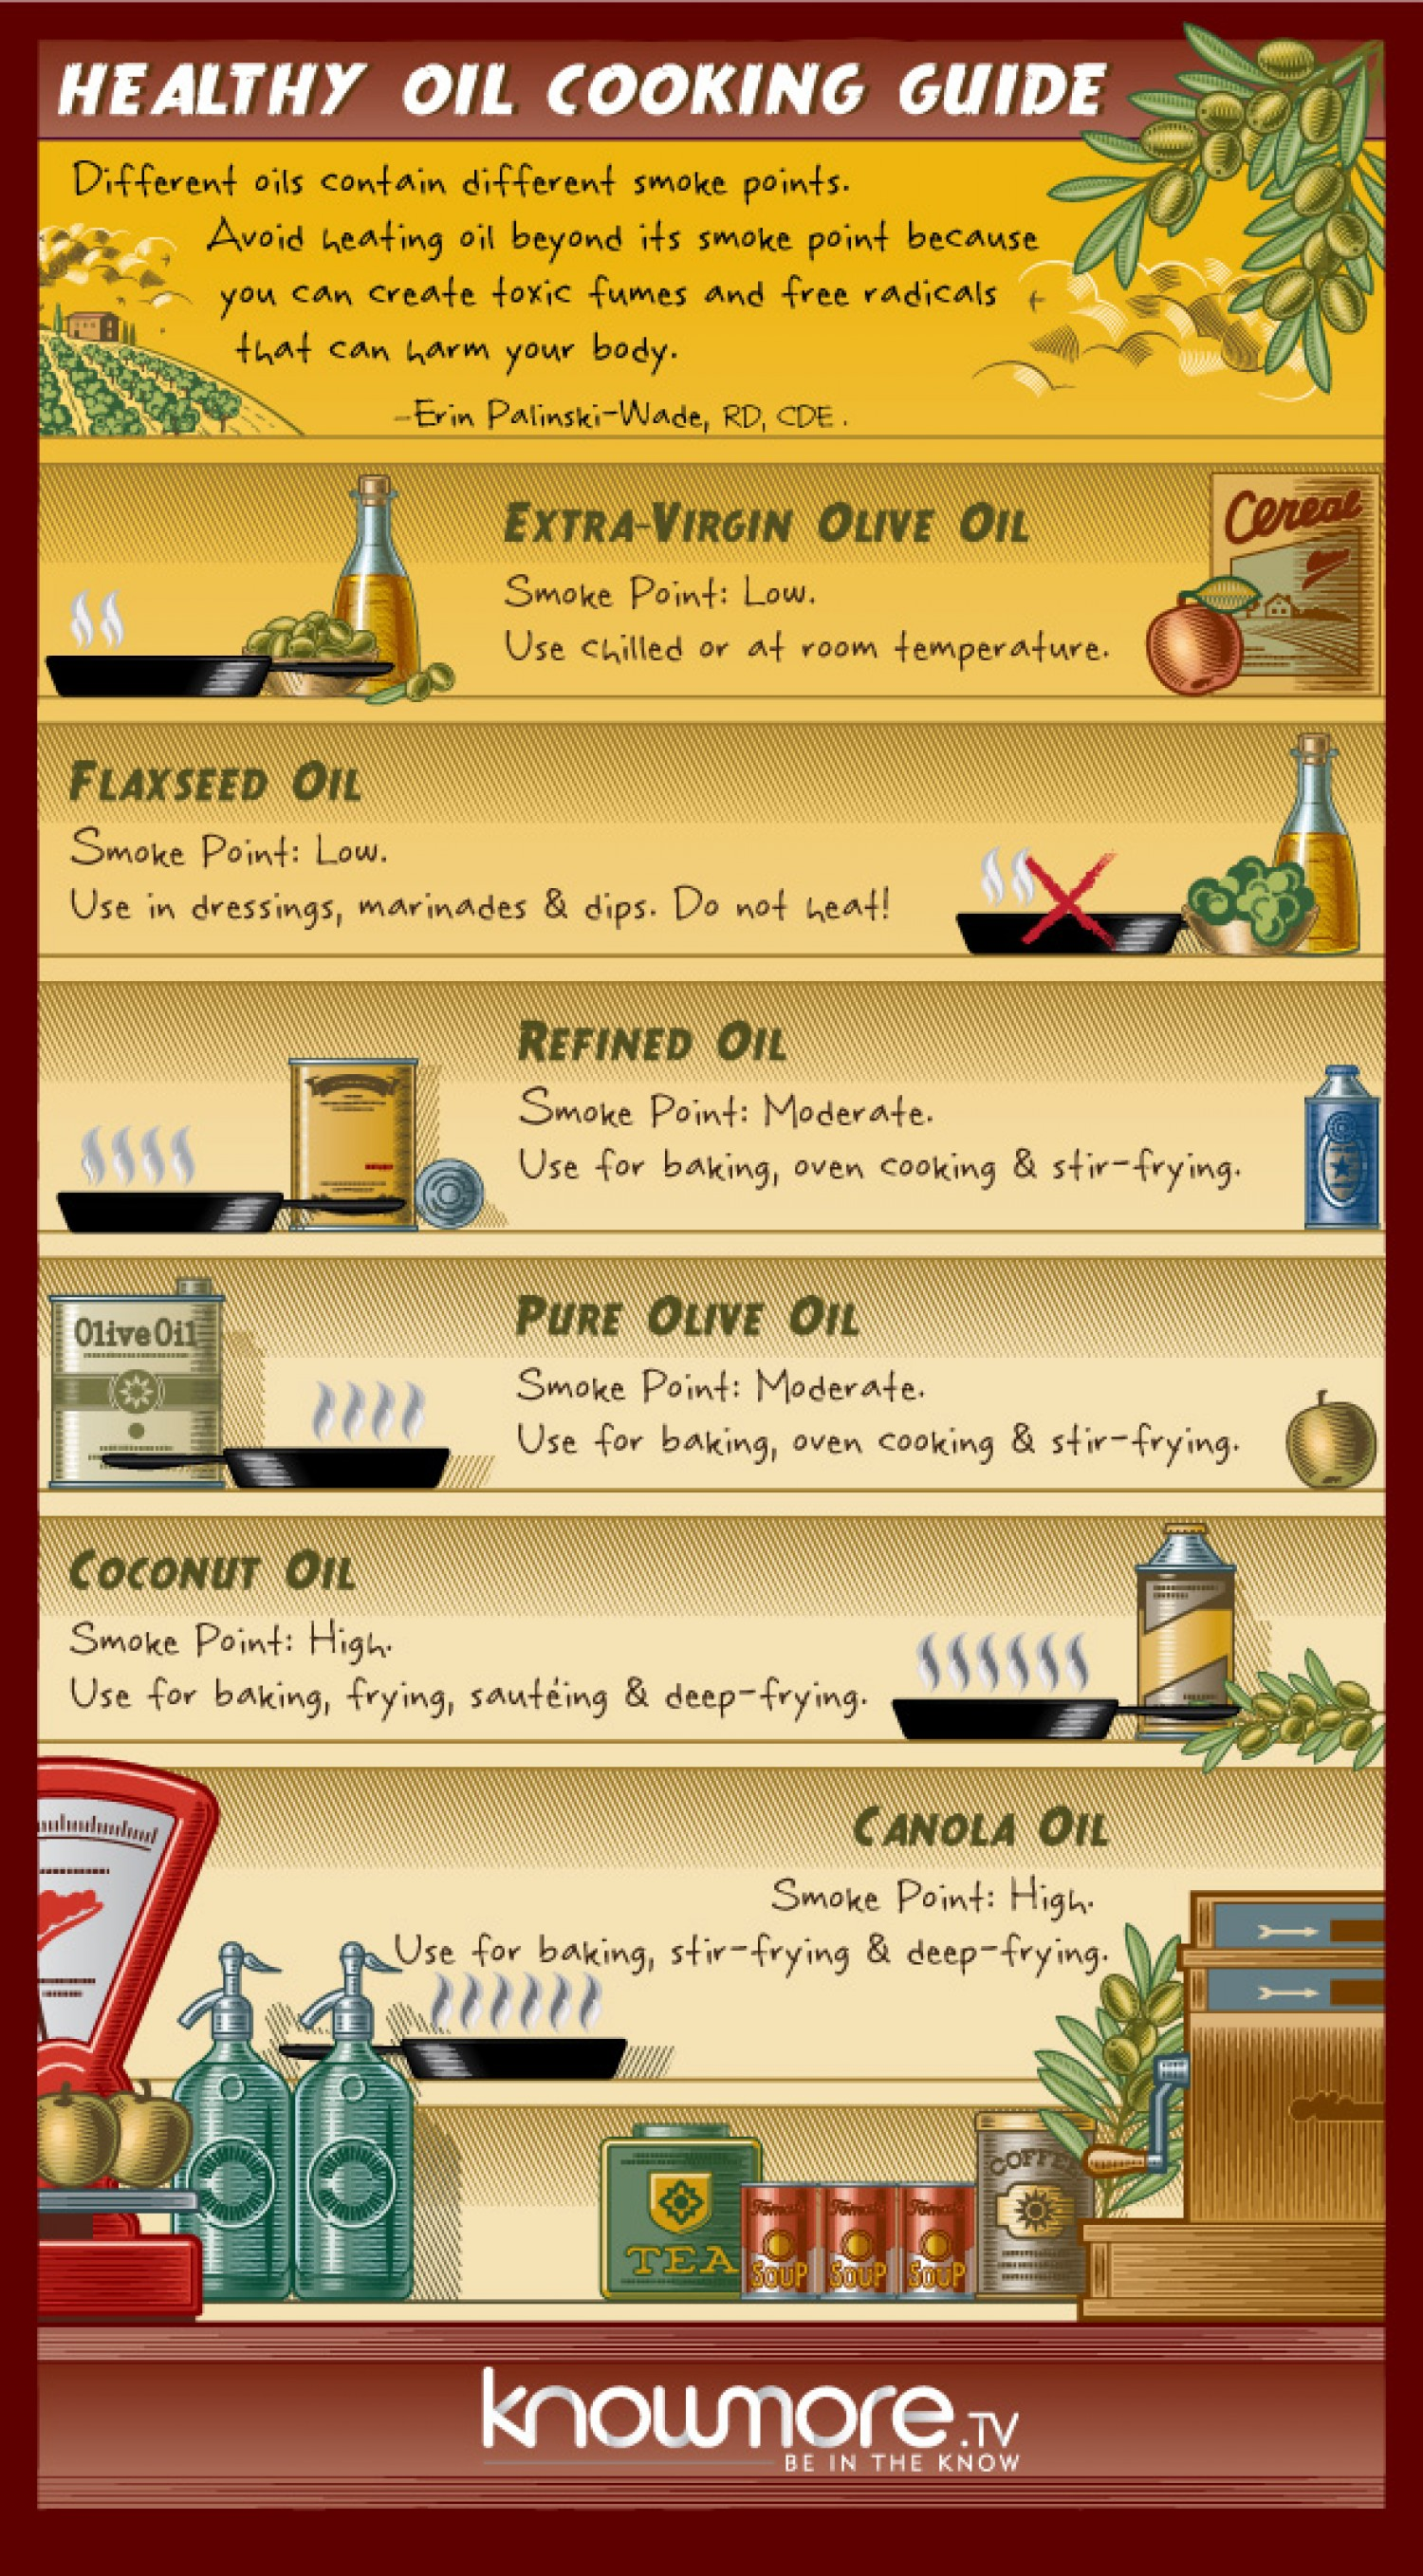 A Guide to Cooking with Healthy Oils Infographic